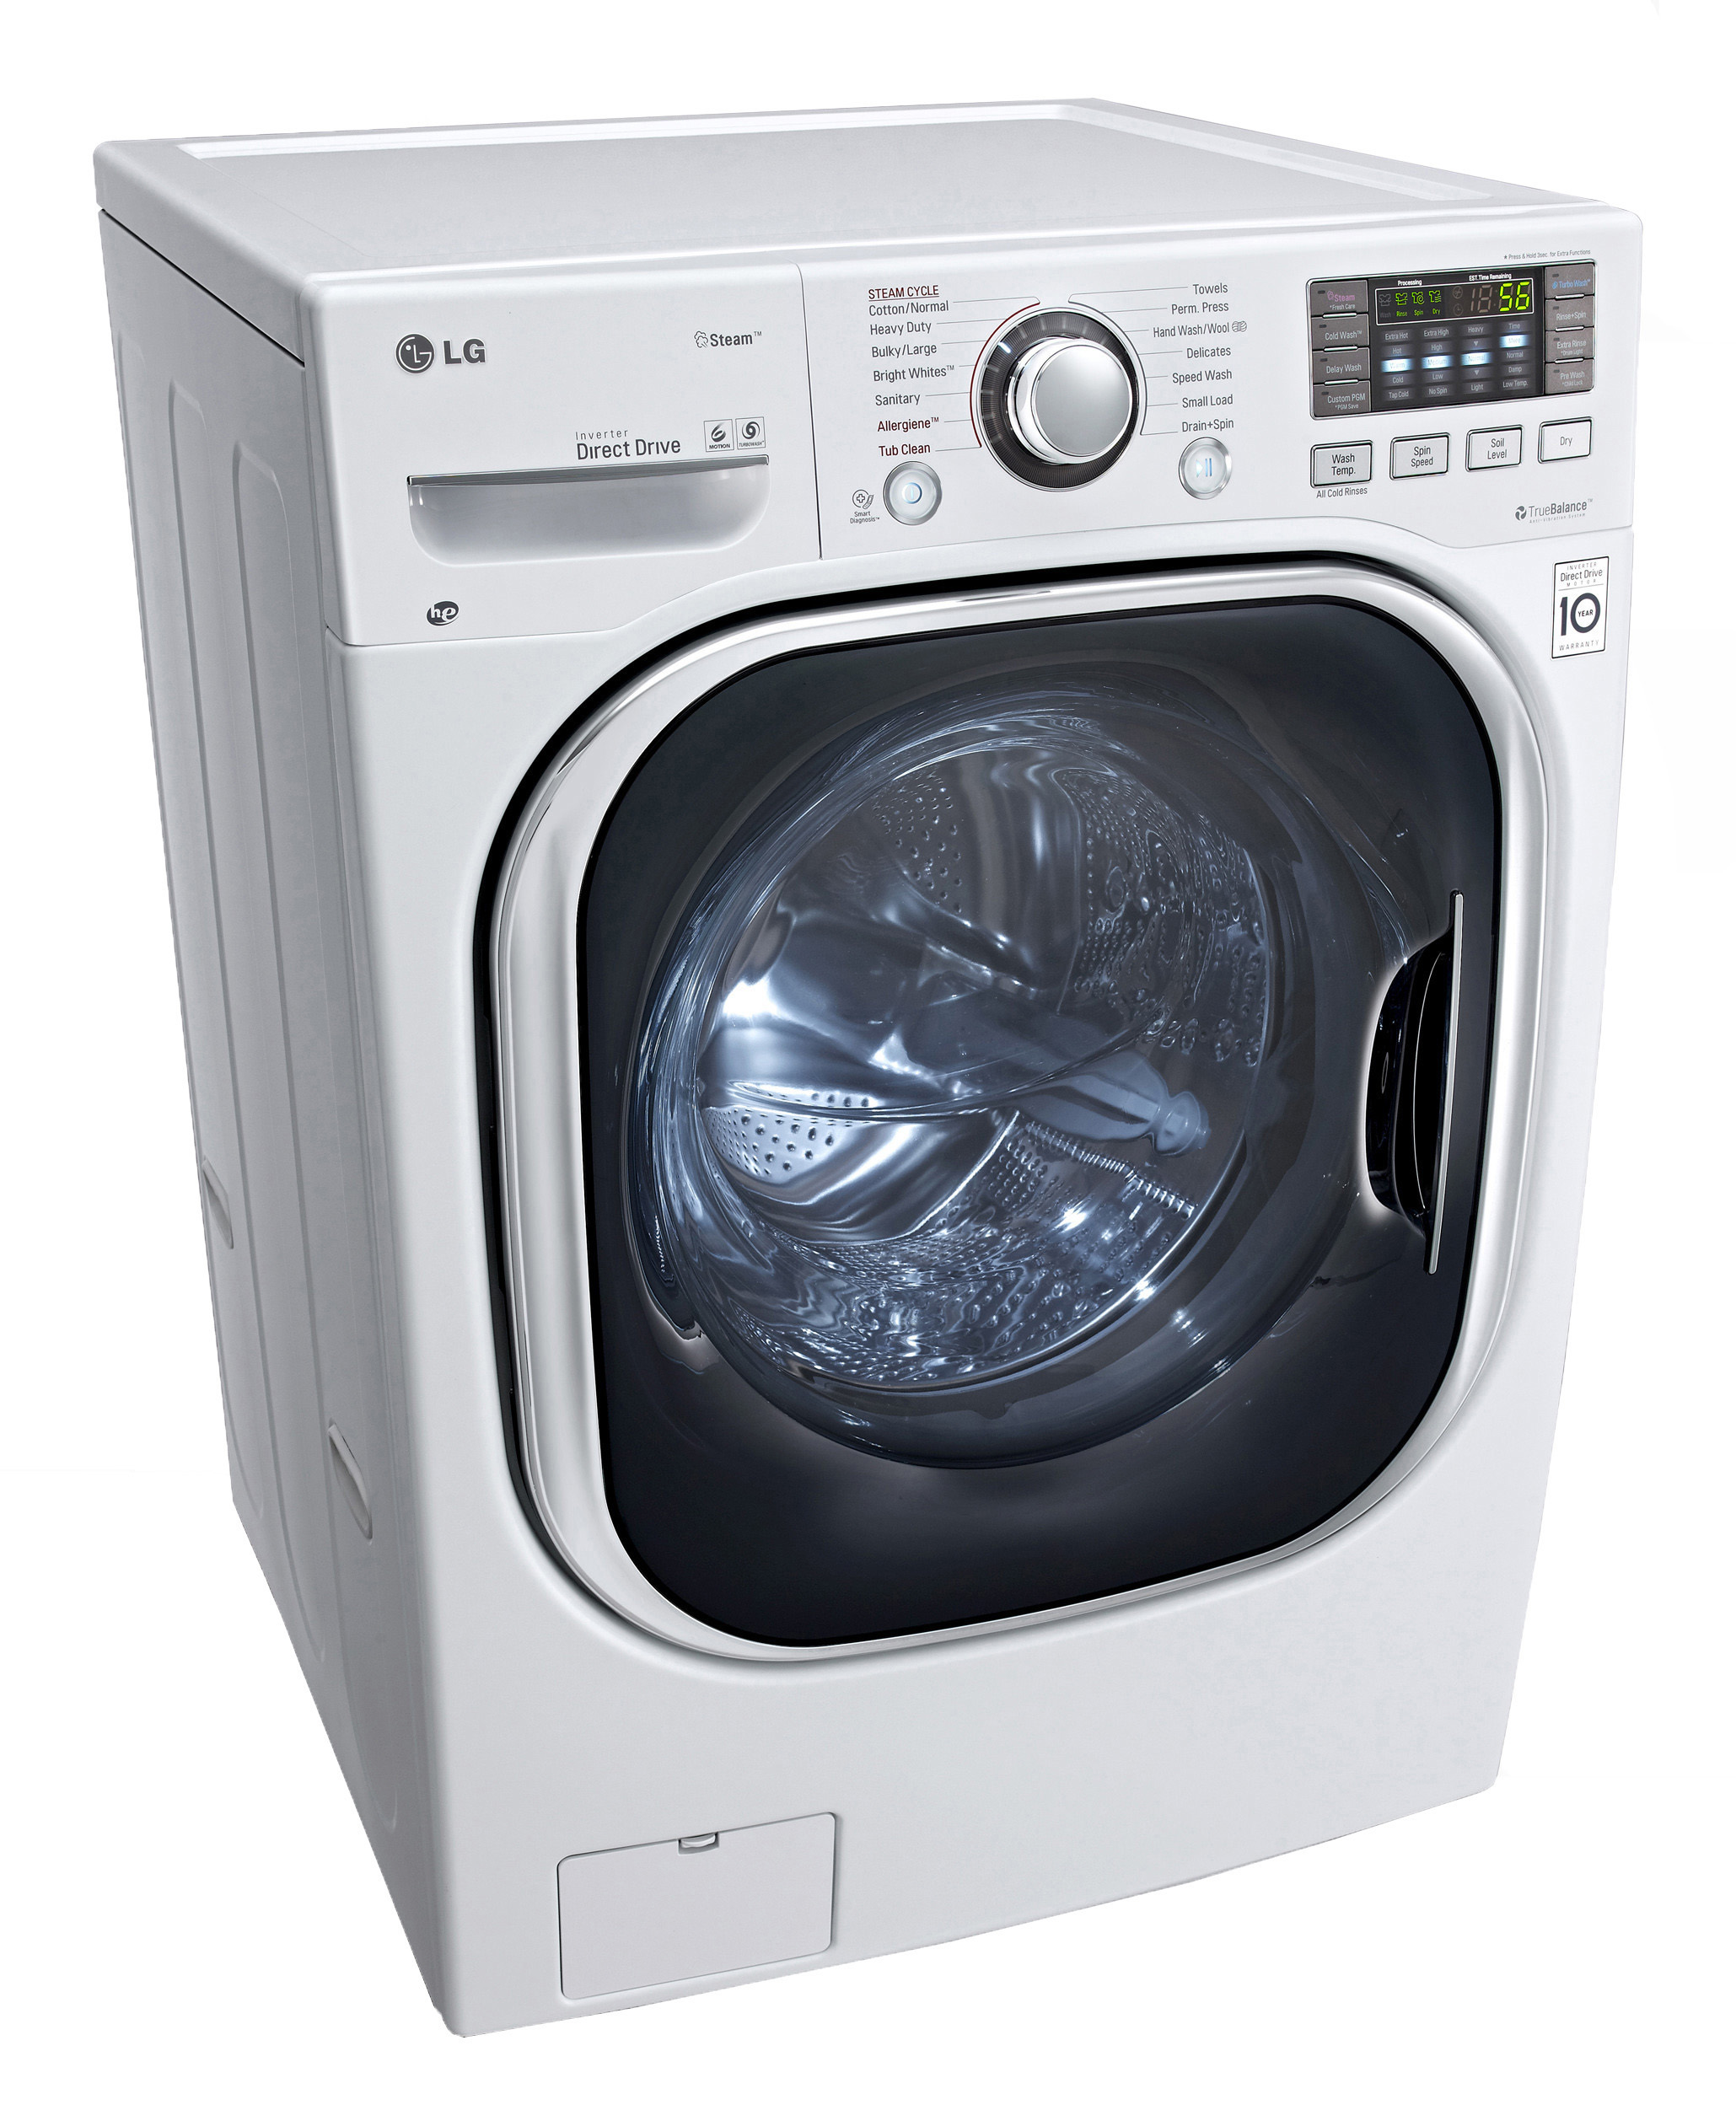 Lg 2 3 cu ft all in one washer and dryer - 732dc060df238f5ef573d70baa6baa7c_214136 732dc060df238f5ef573d70baa6baa7c_214179 732dc060df238f5ef573d70baa6baa7c_214180